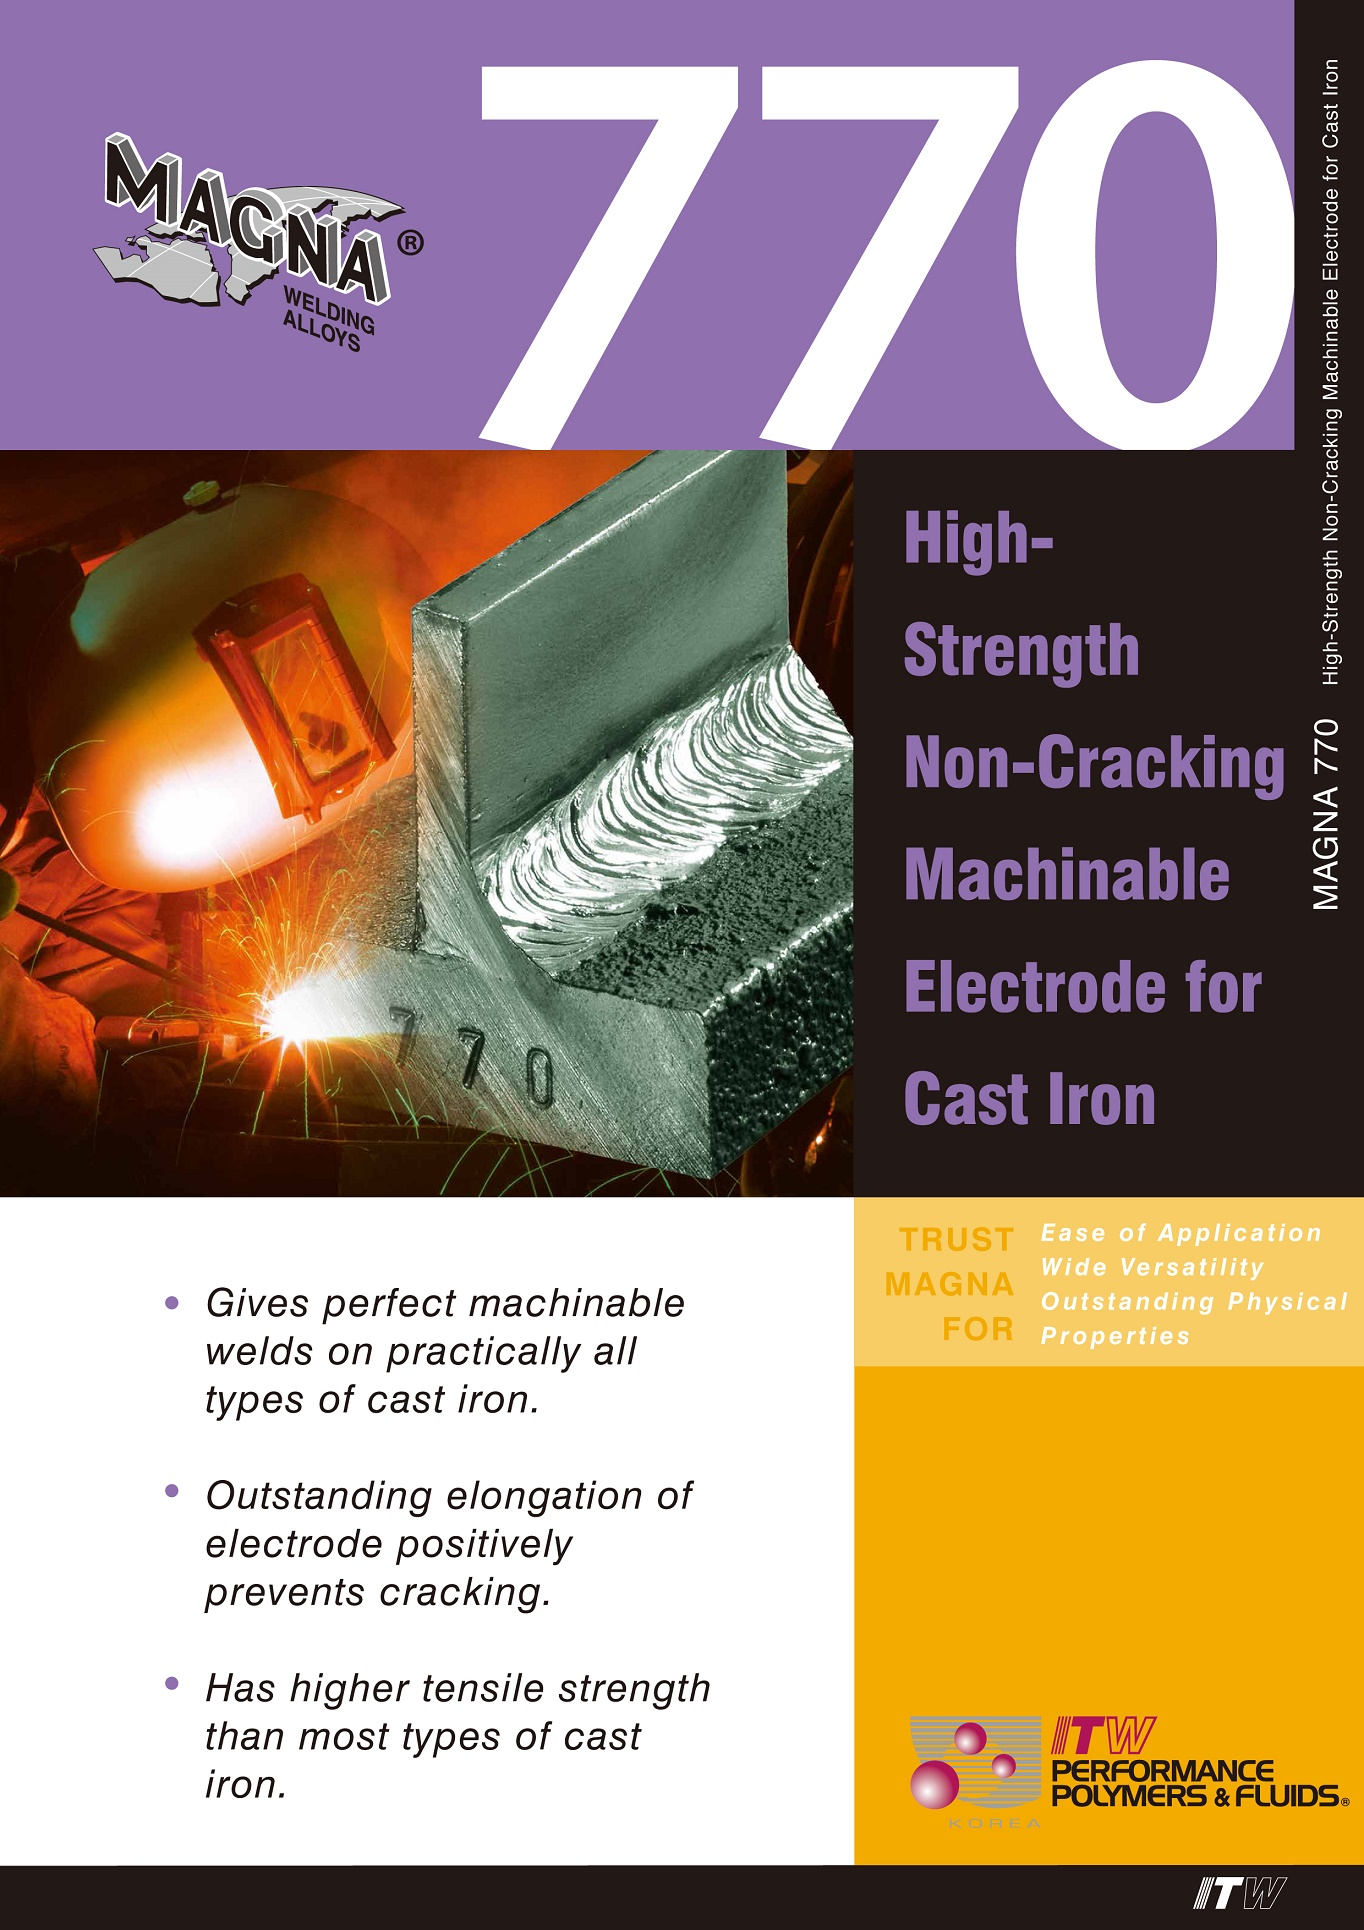 ARC WELDING-for cast iron_770_eng_dm_160101-1